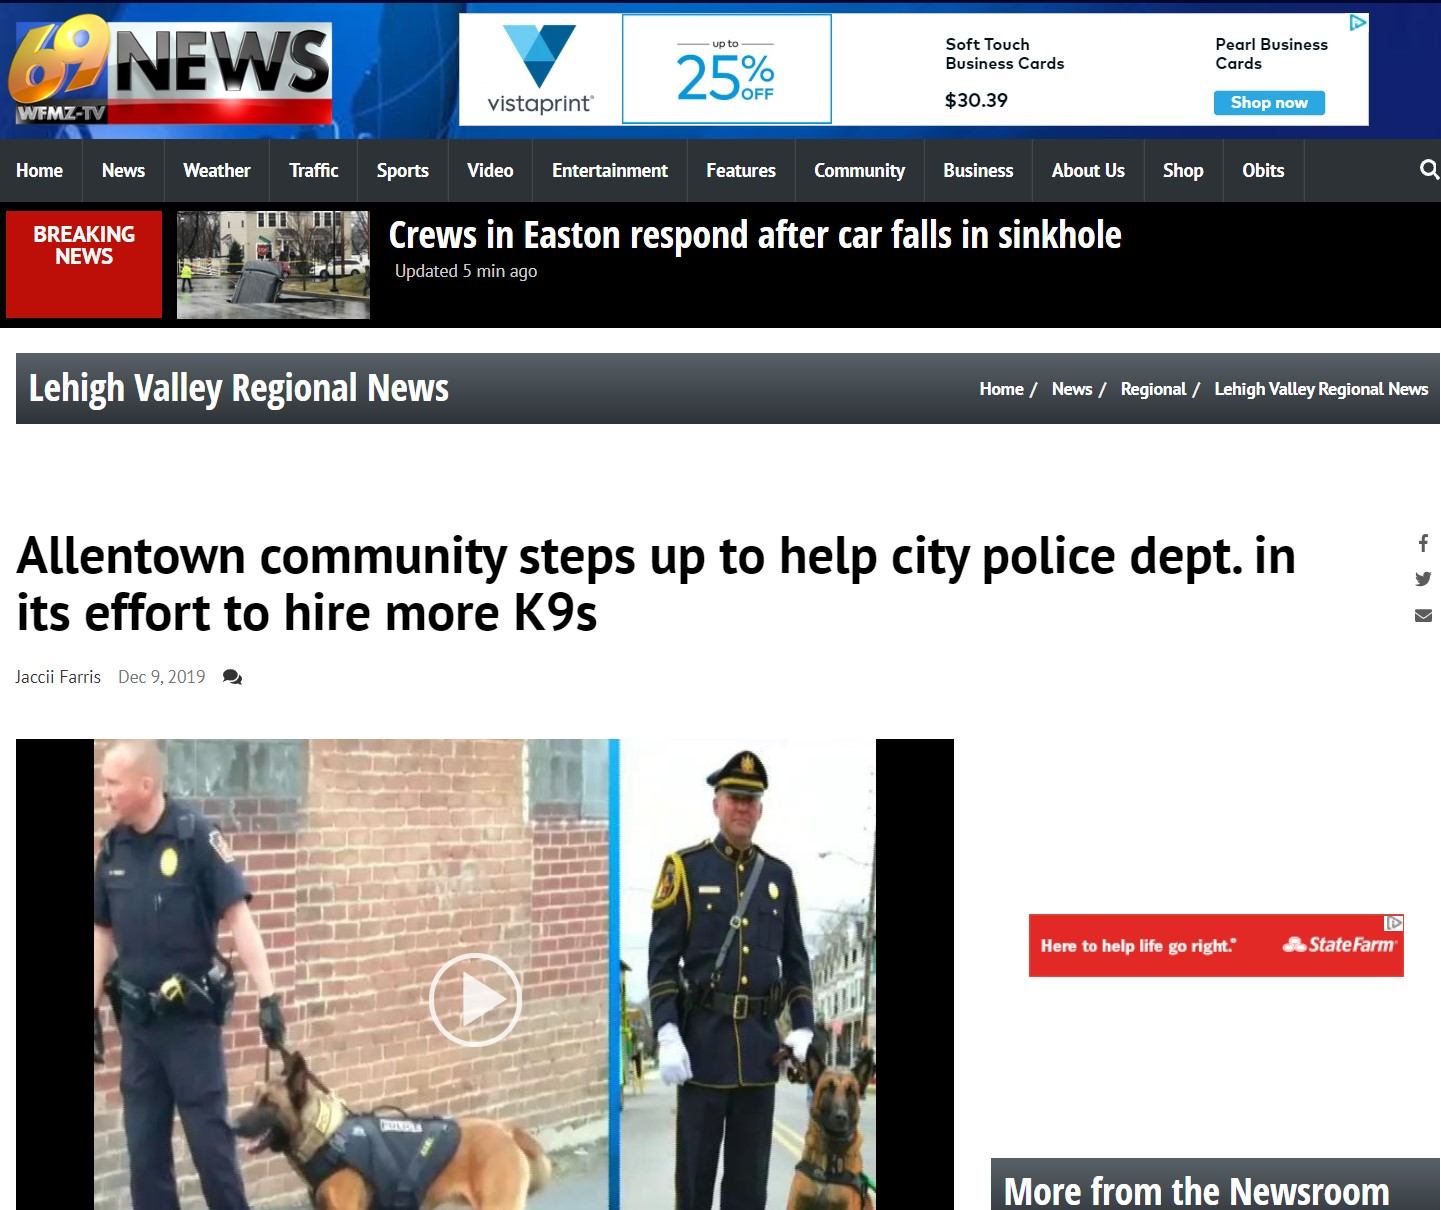 Allentown community steps up to help city police dept. in its effort to hire more K9s